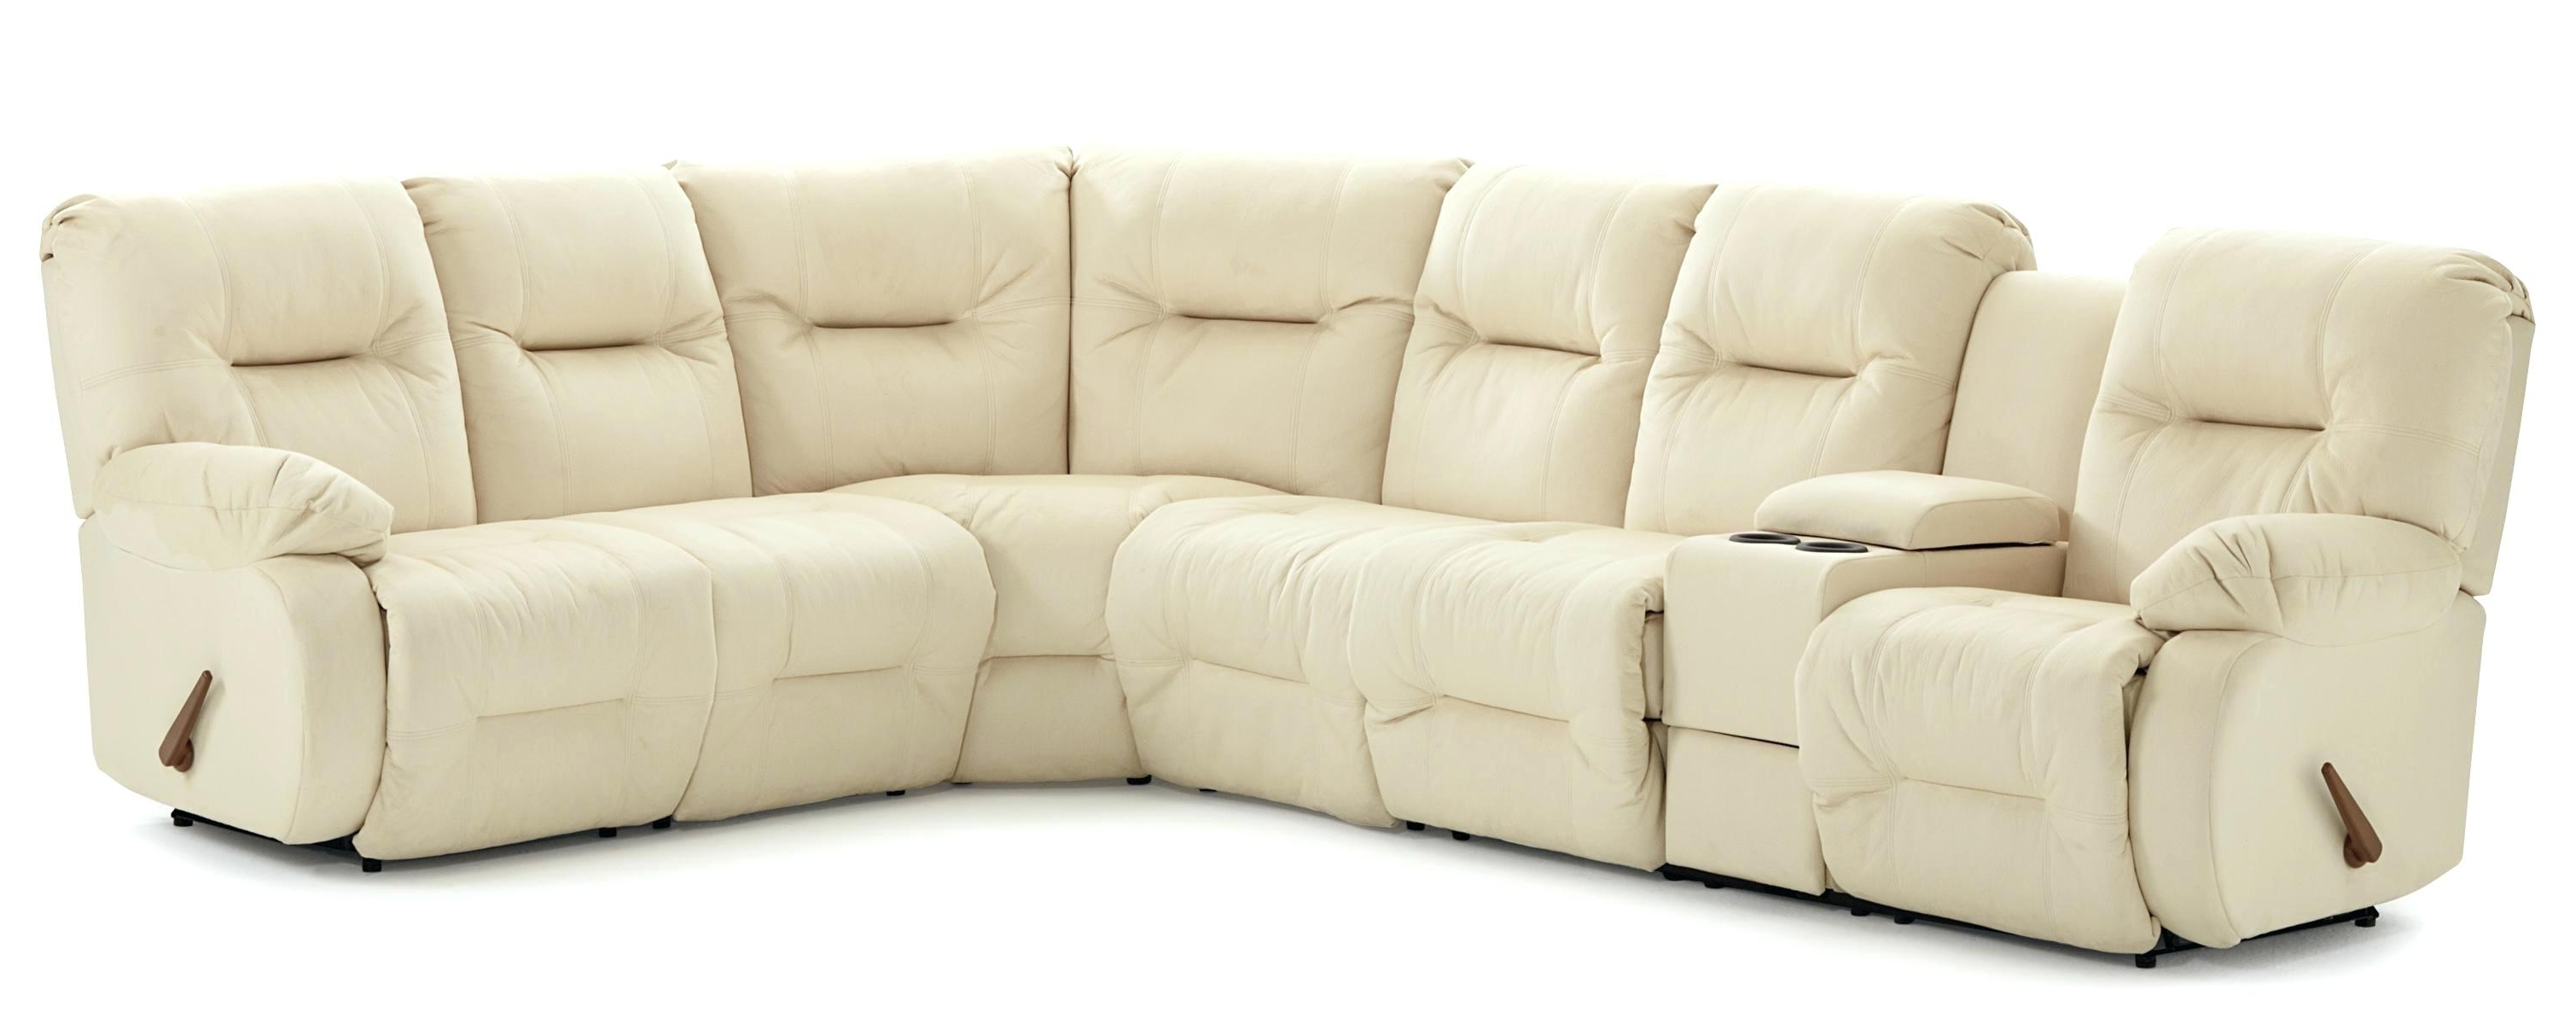 Well Known Best Sectional Sofa Covers Diy Sofas Dallas Texas Bed Cheap Throughout Dallas Texas Sectional Sofas (View 15 of 15)